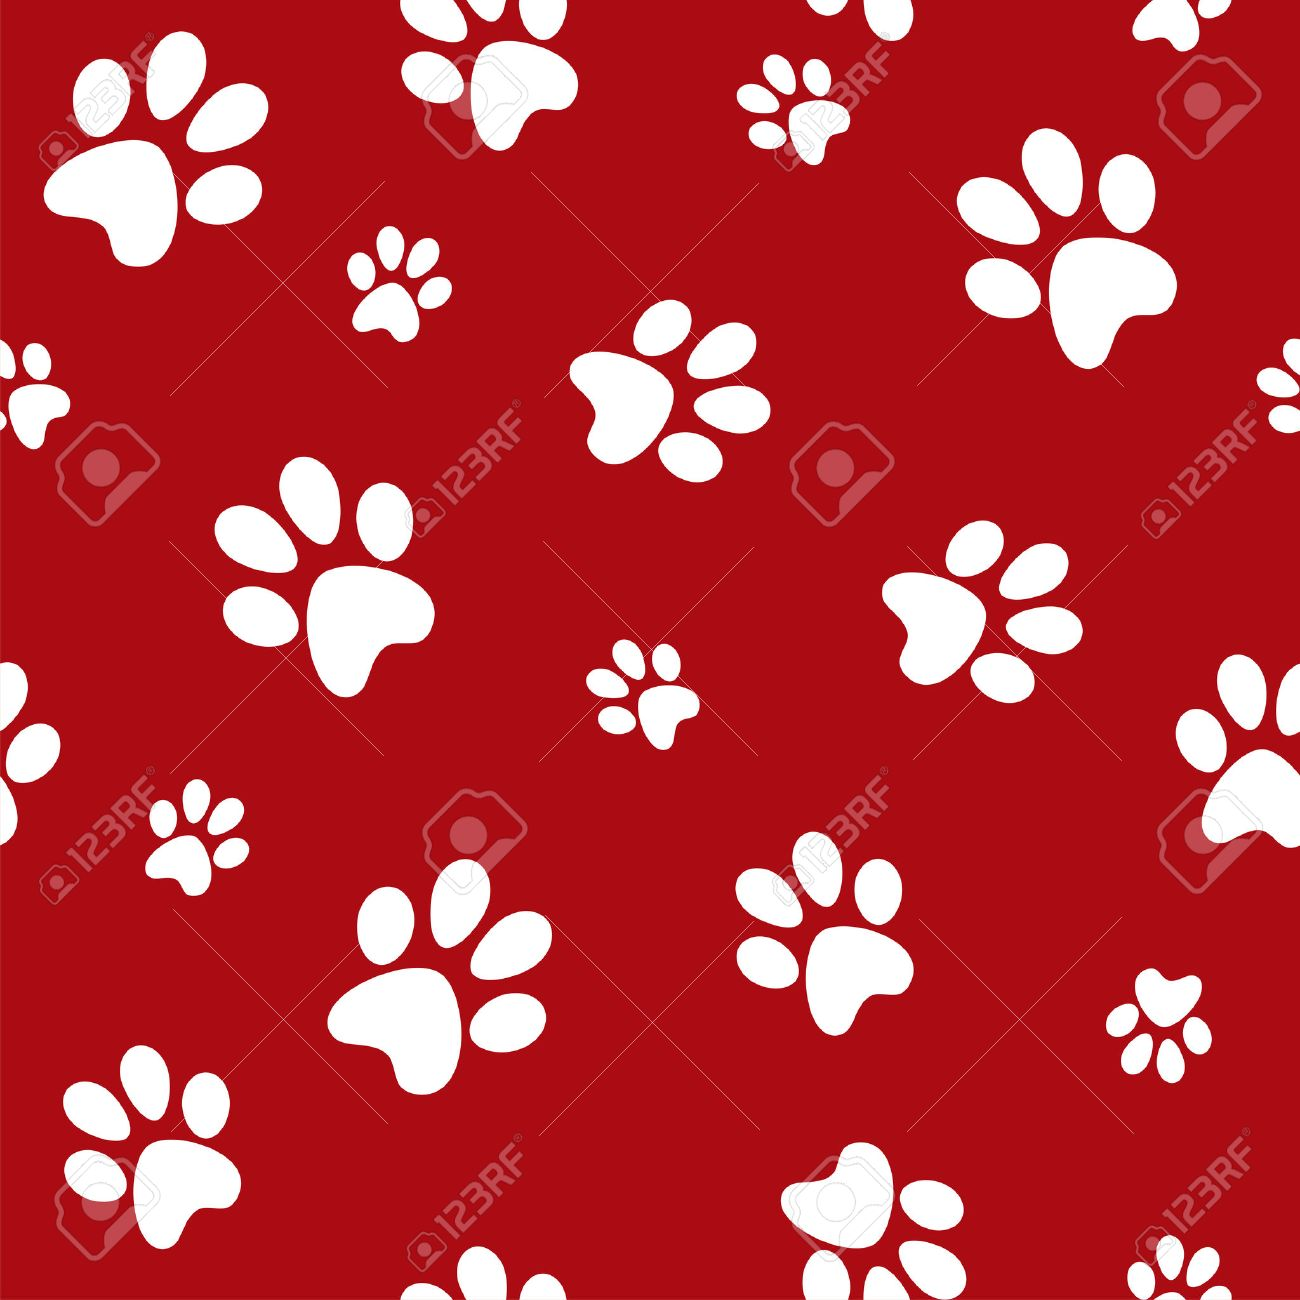 1300x1300 Red Paw Print Background Godstyle Keywords And Pictures